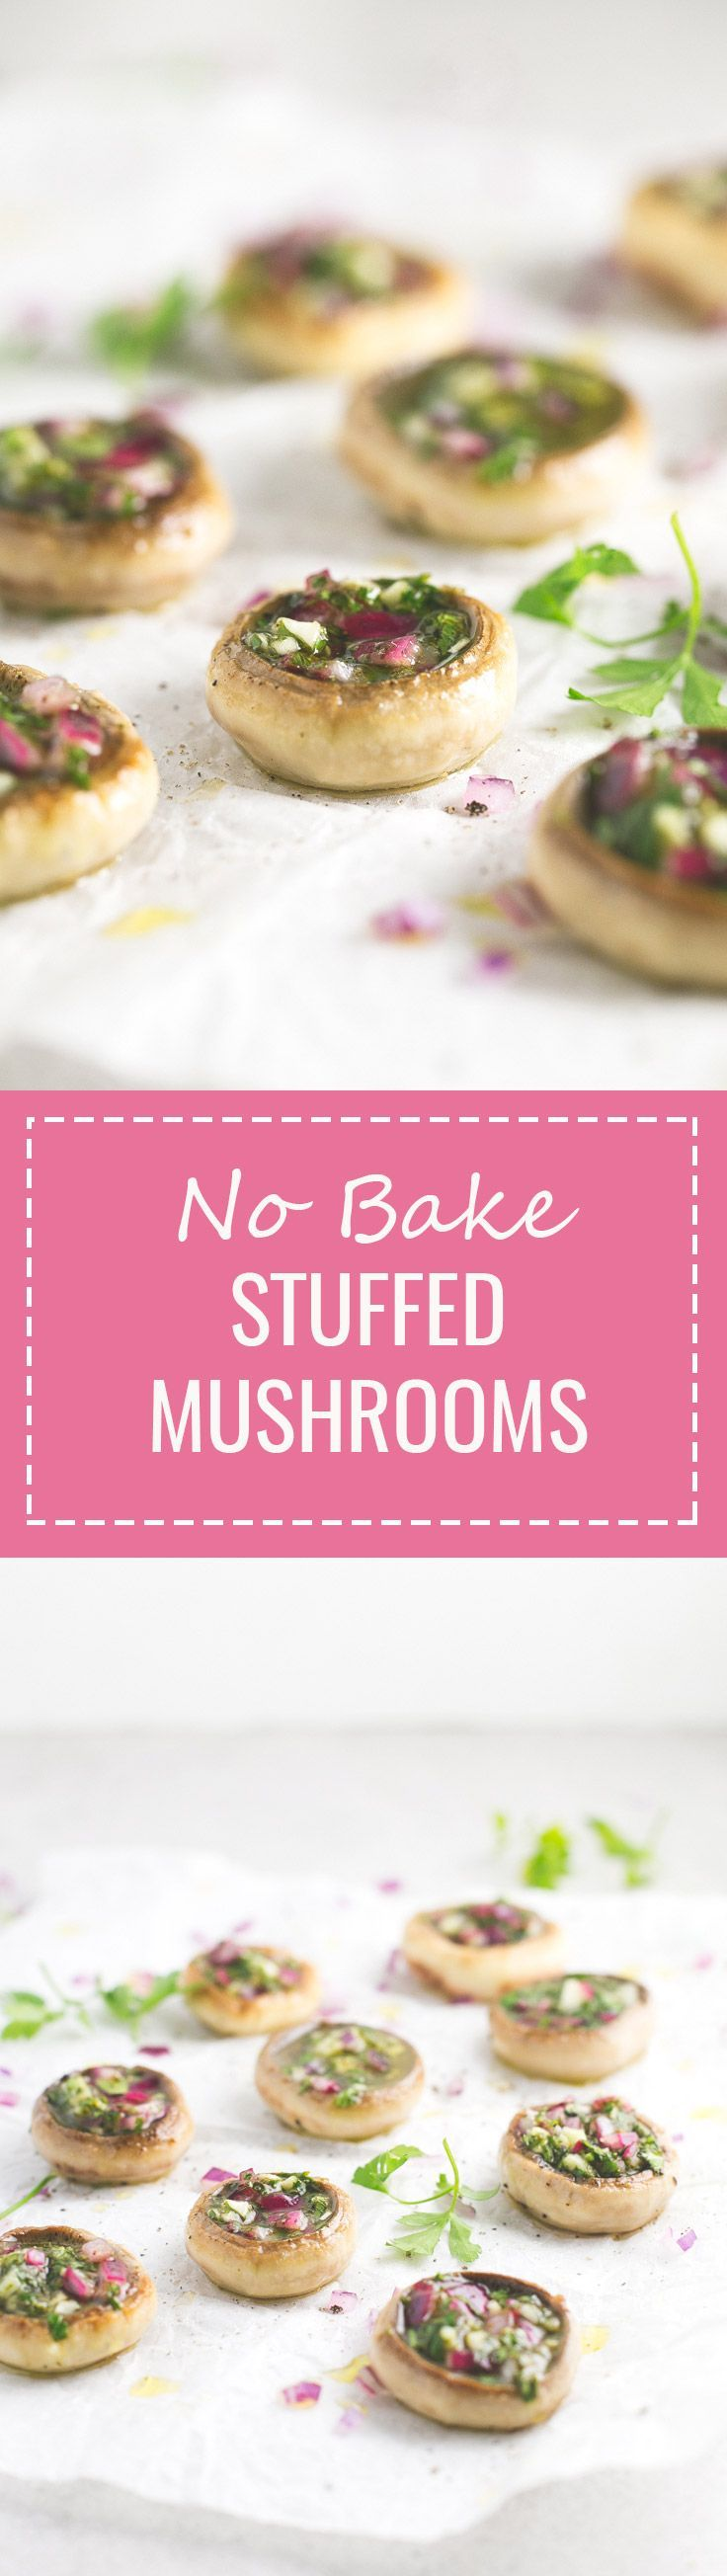 (Vegan and GF) No Bake Stuffed Mushrooms - Stuffed mushrooms are the perfect appetizer for Christmas and this no-bake recipe is super simple and full of flavor.